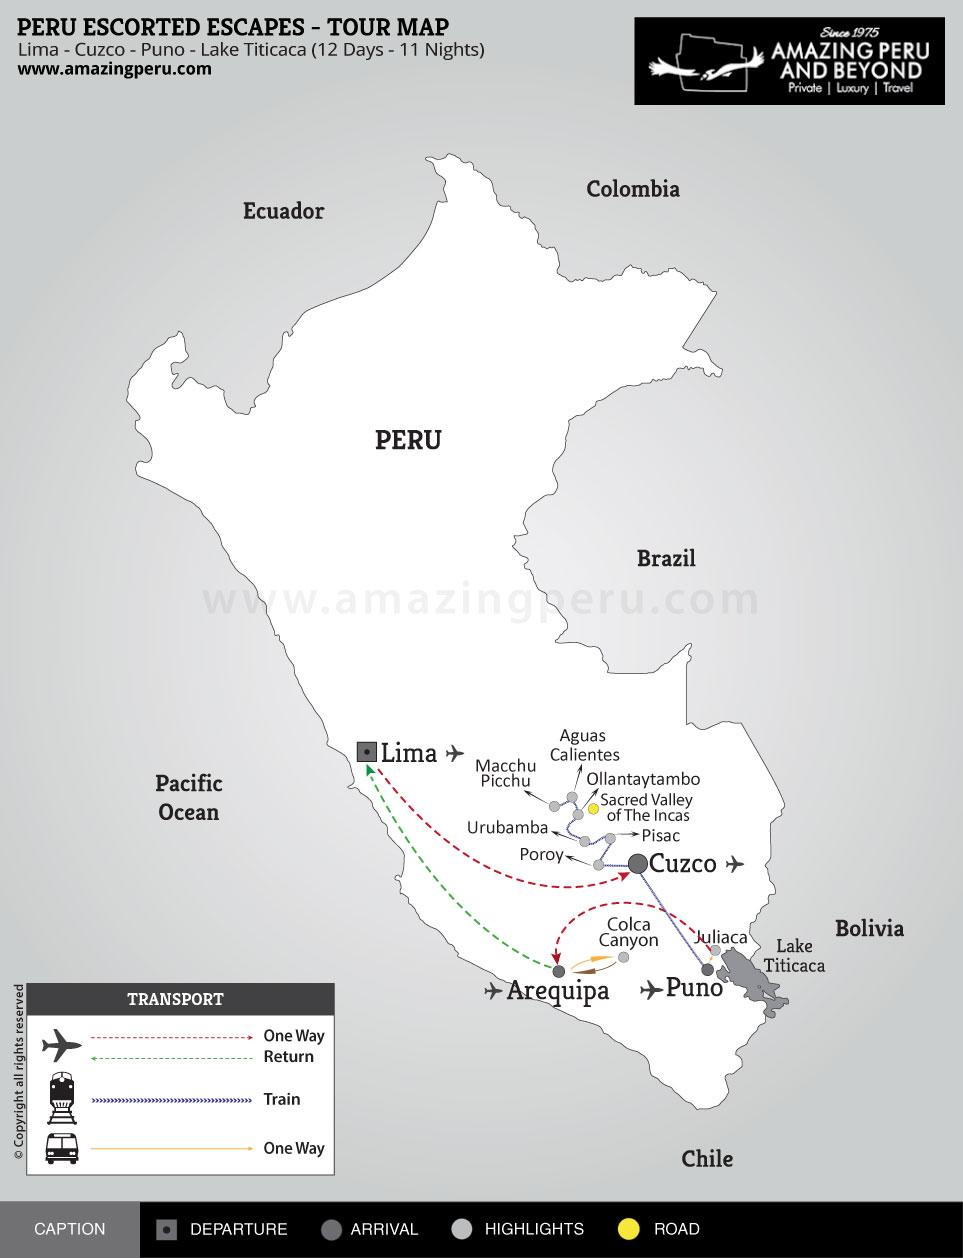 Peru Escorted Escapes Tour 3 - 12 days / 11 nights.